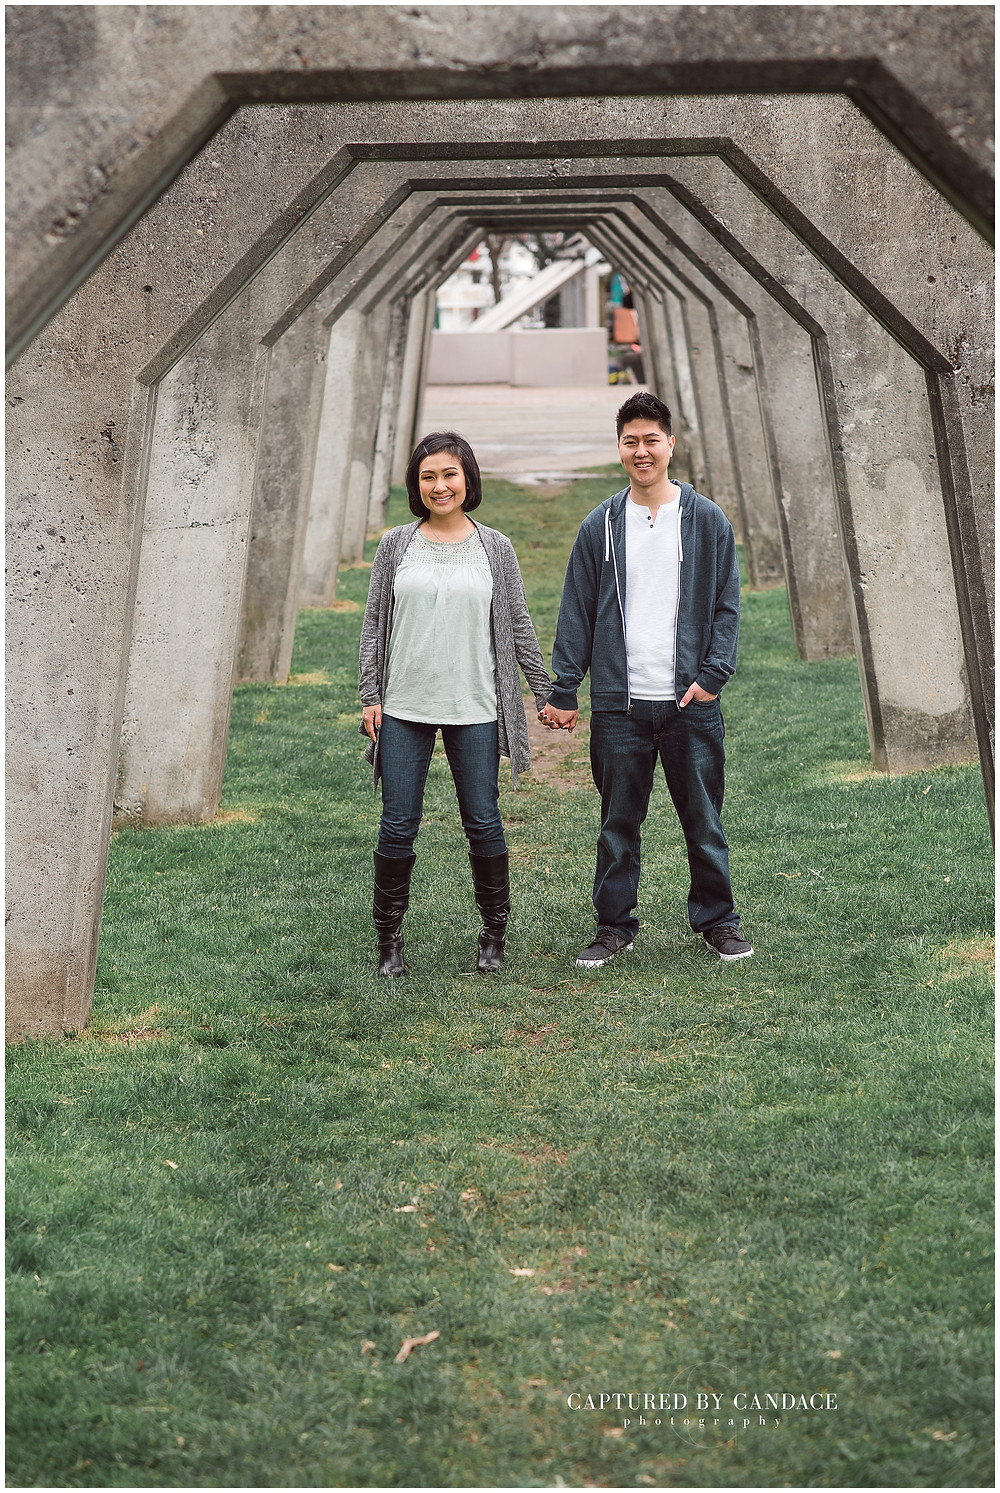 Spring engagement session at Gasworks park in Seattle with Captured by Candace photography